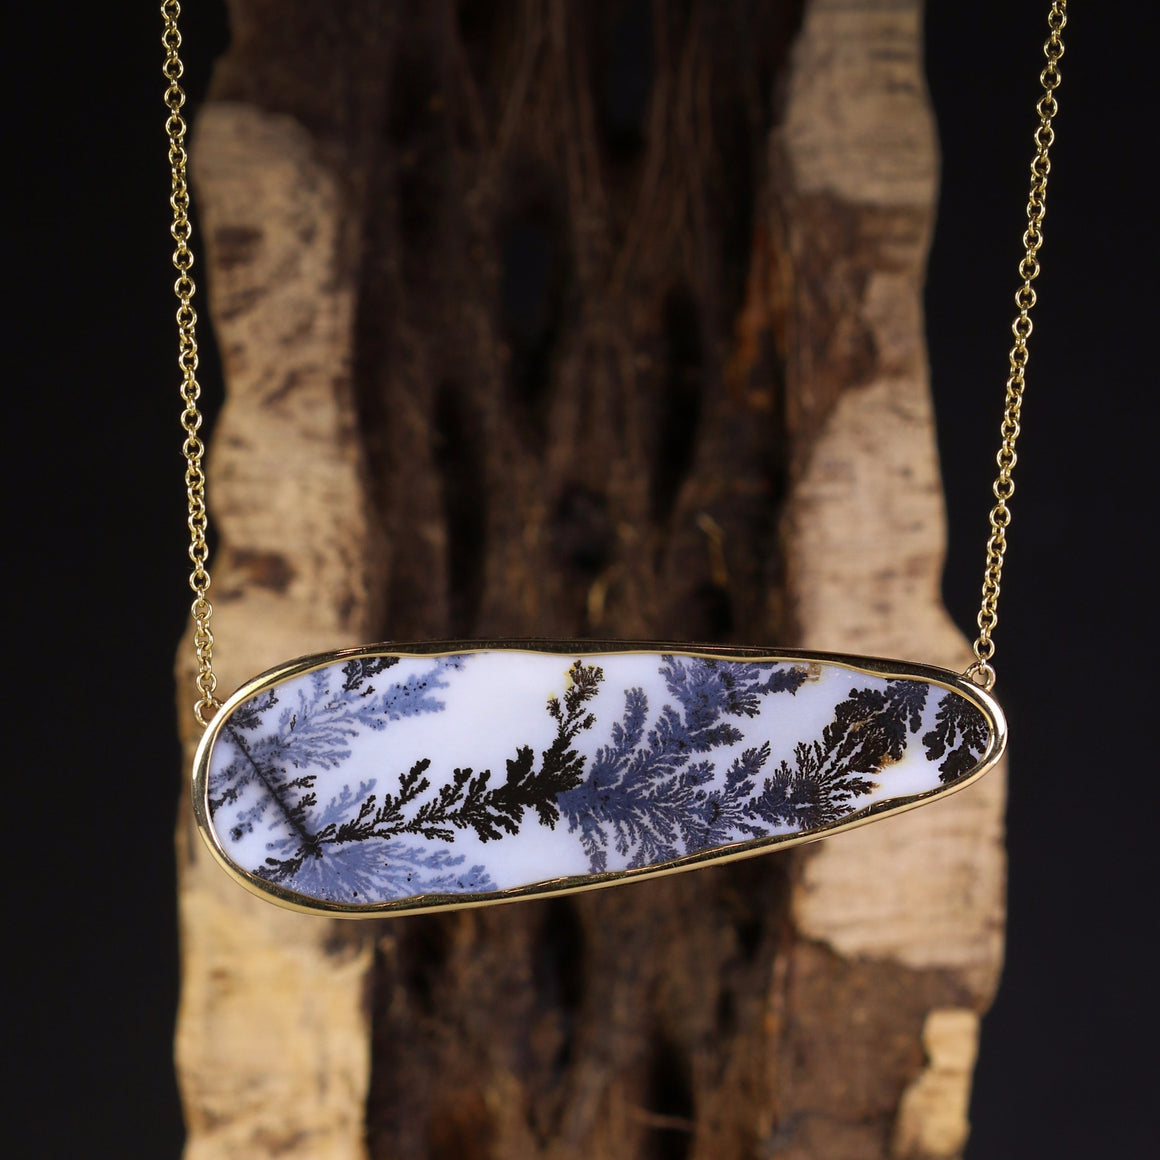 Black & White Dendritic Agate Necklace in Yellow Gold